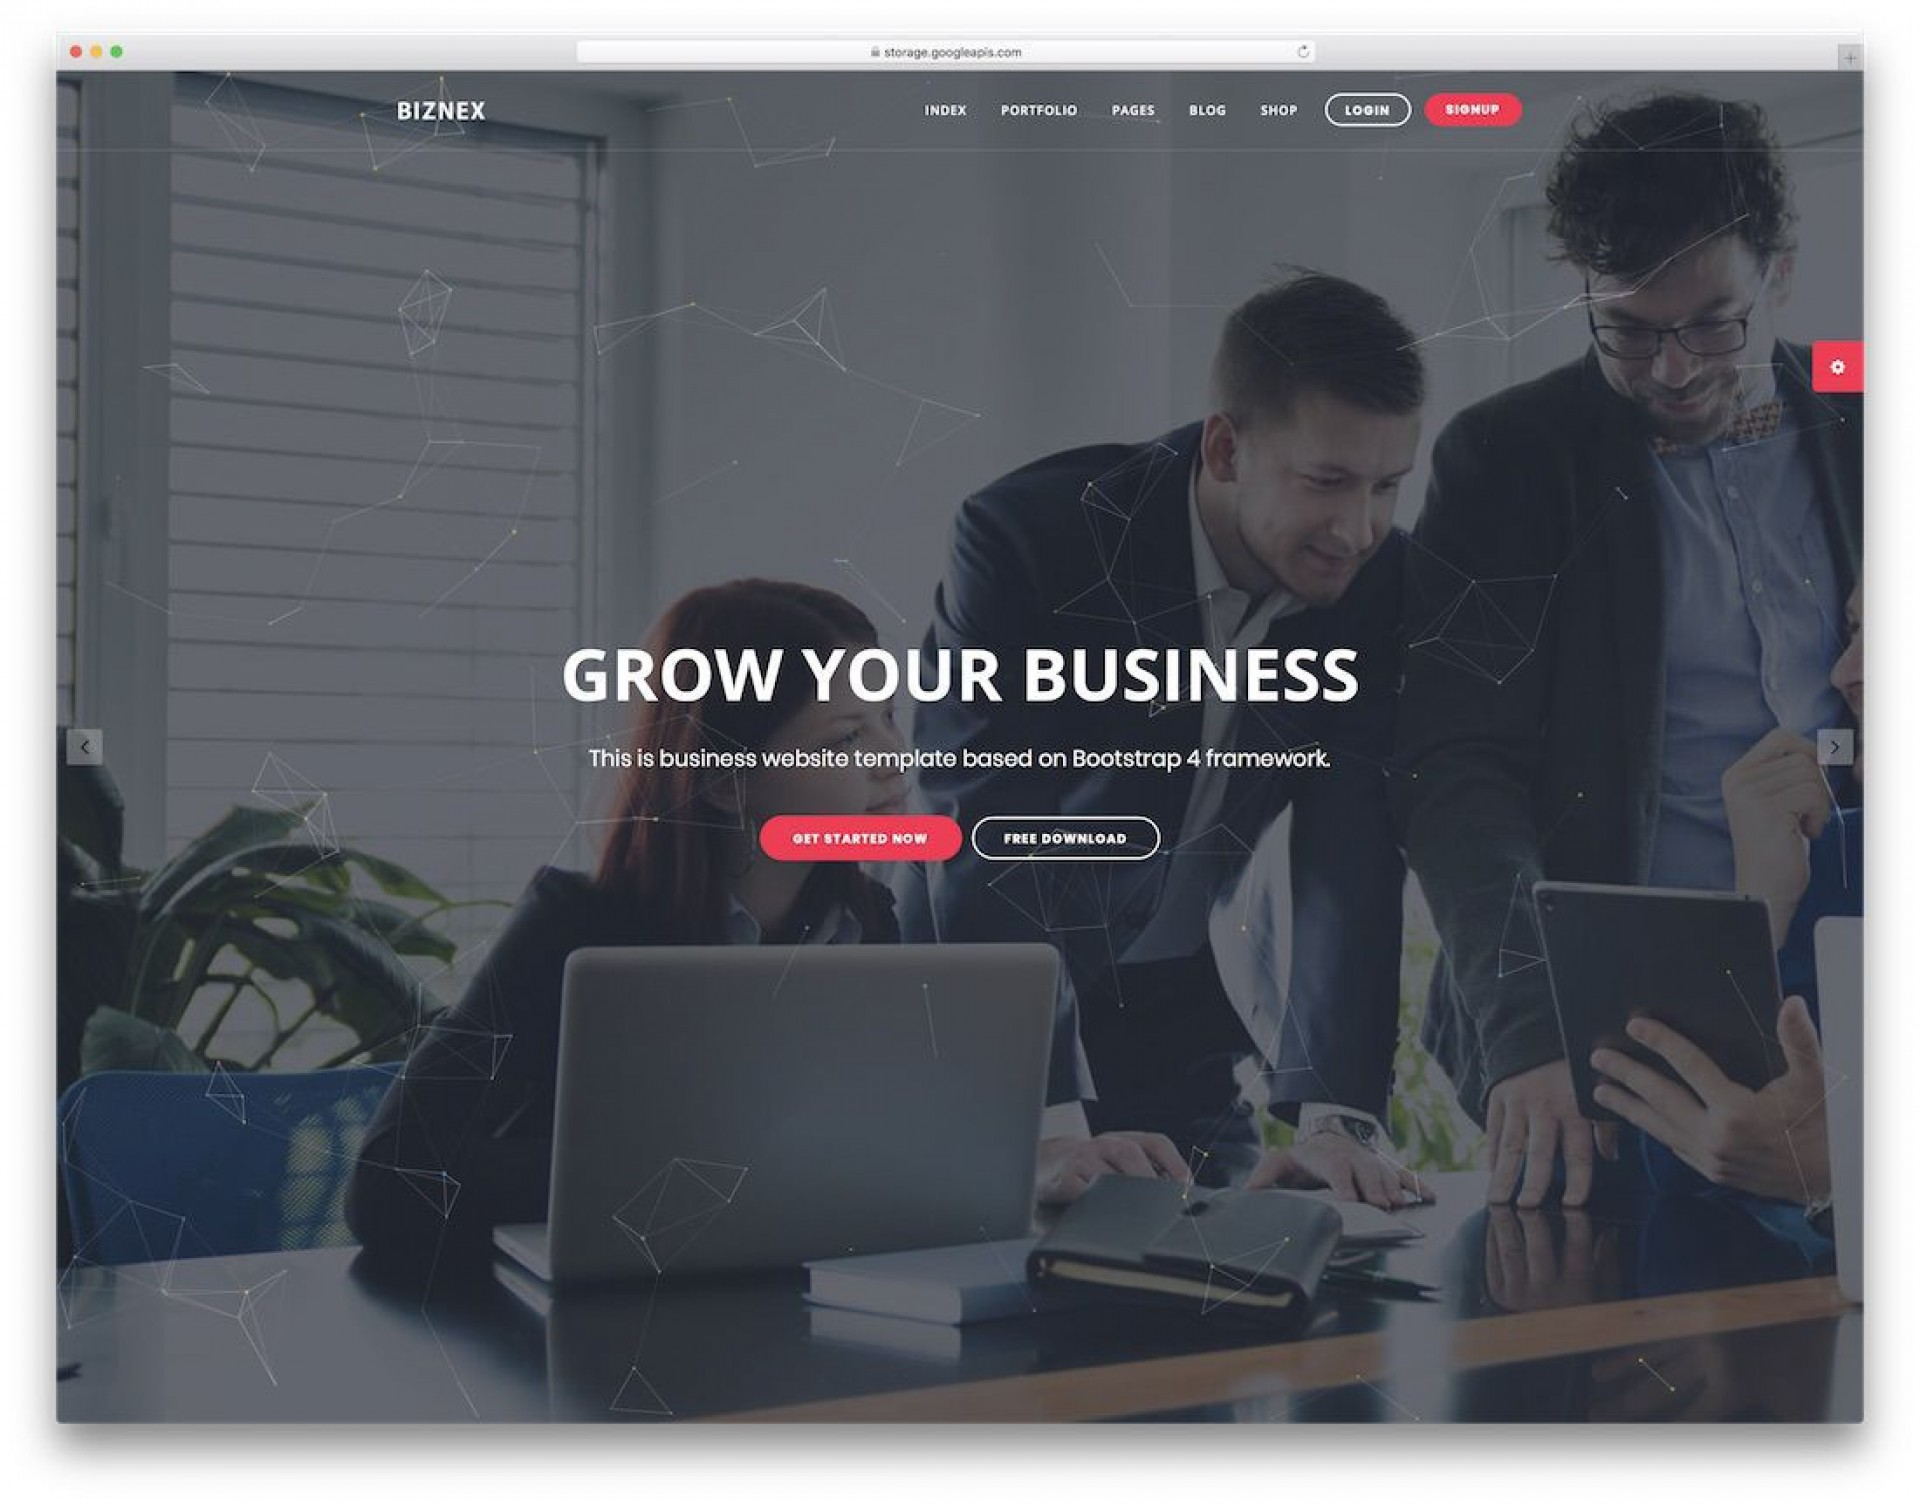 002 Stirring Free Busines Website Template Download Html And Cs Jquery Image  Responsive For It Company1920